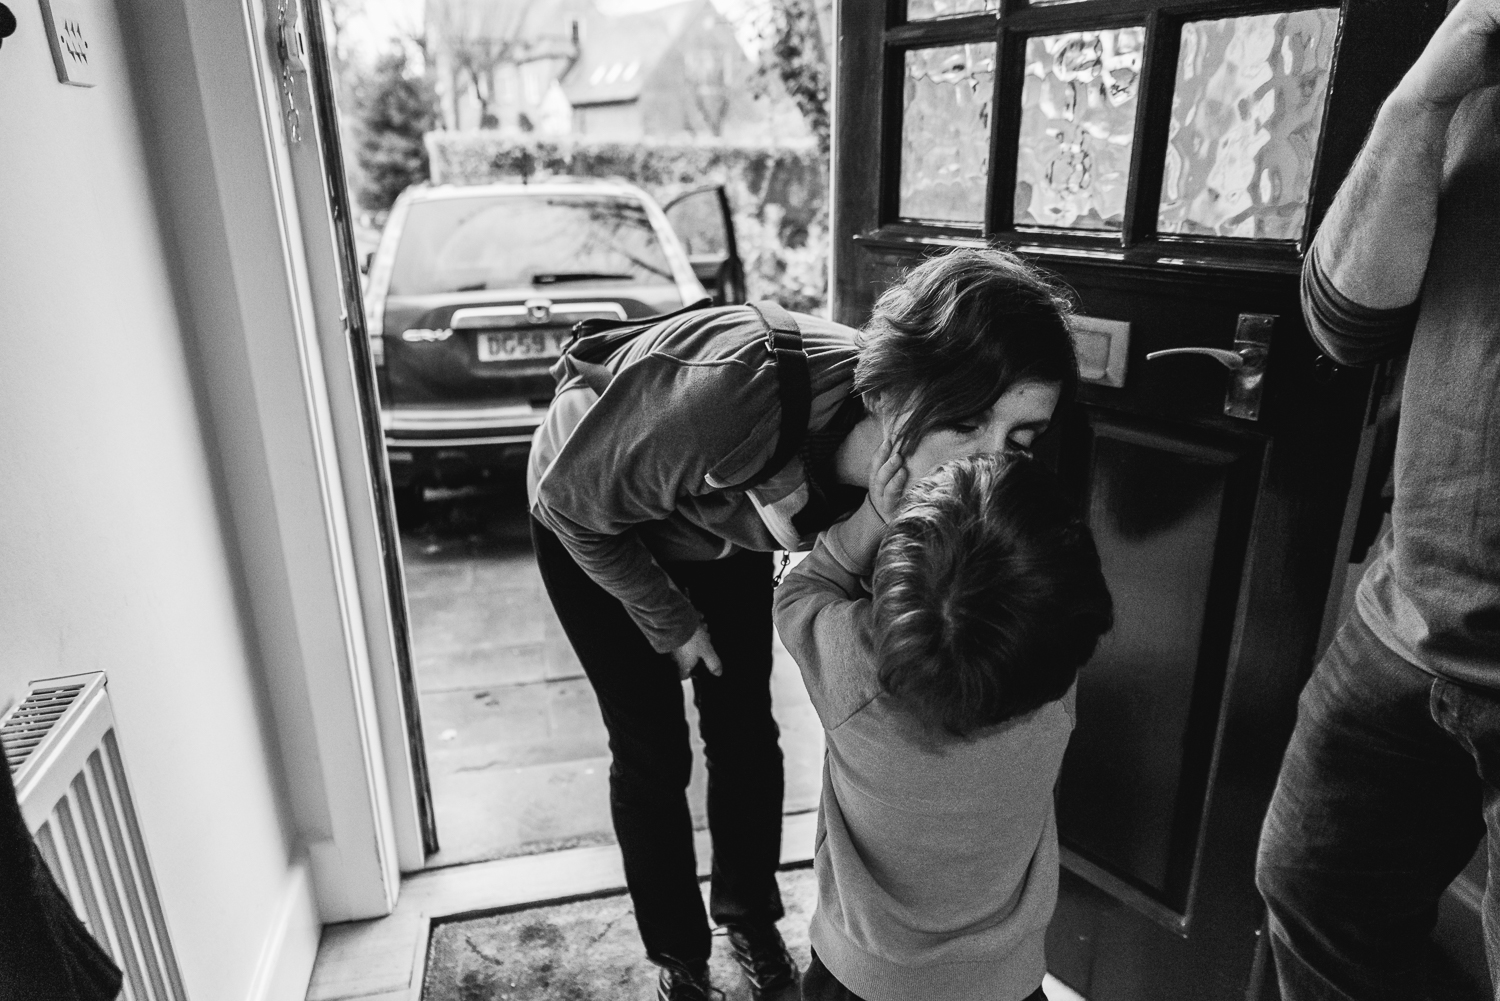 Copy of Son giving his mother a kiss goodbye at the door - Diana Hagues